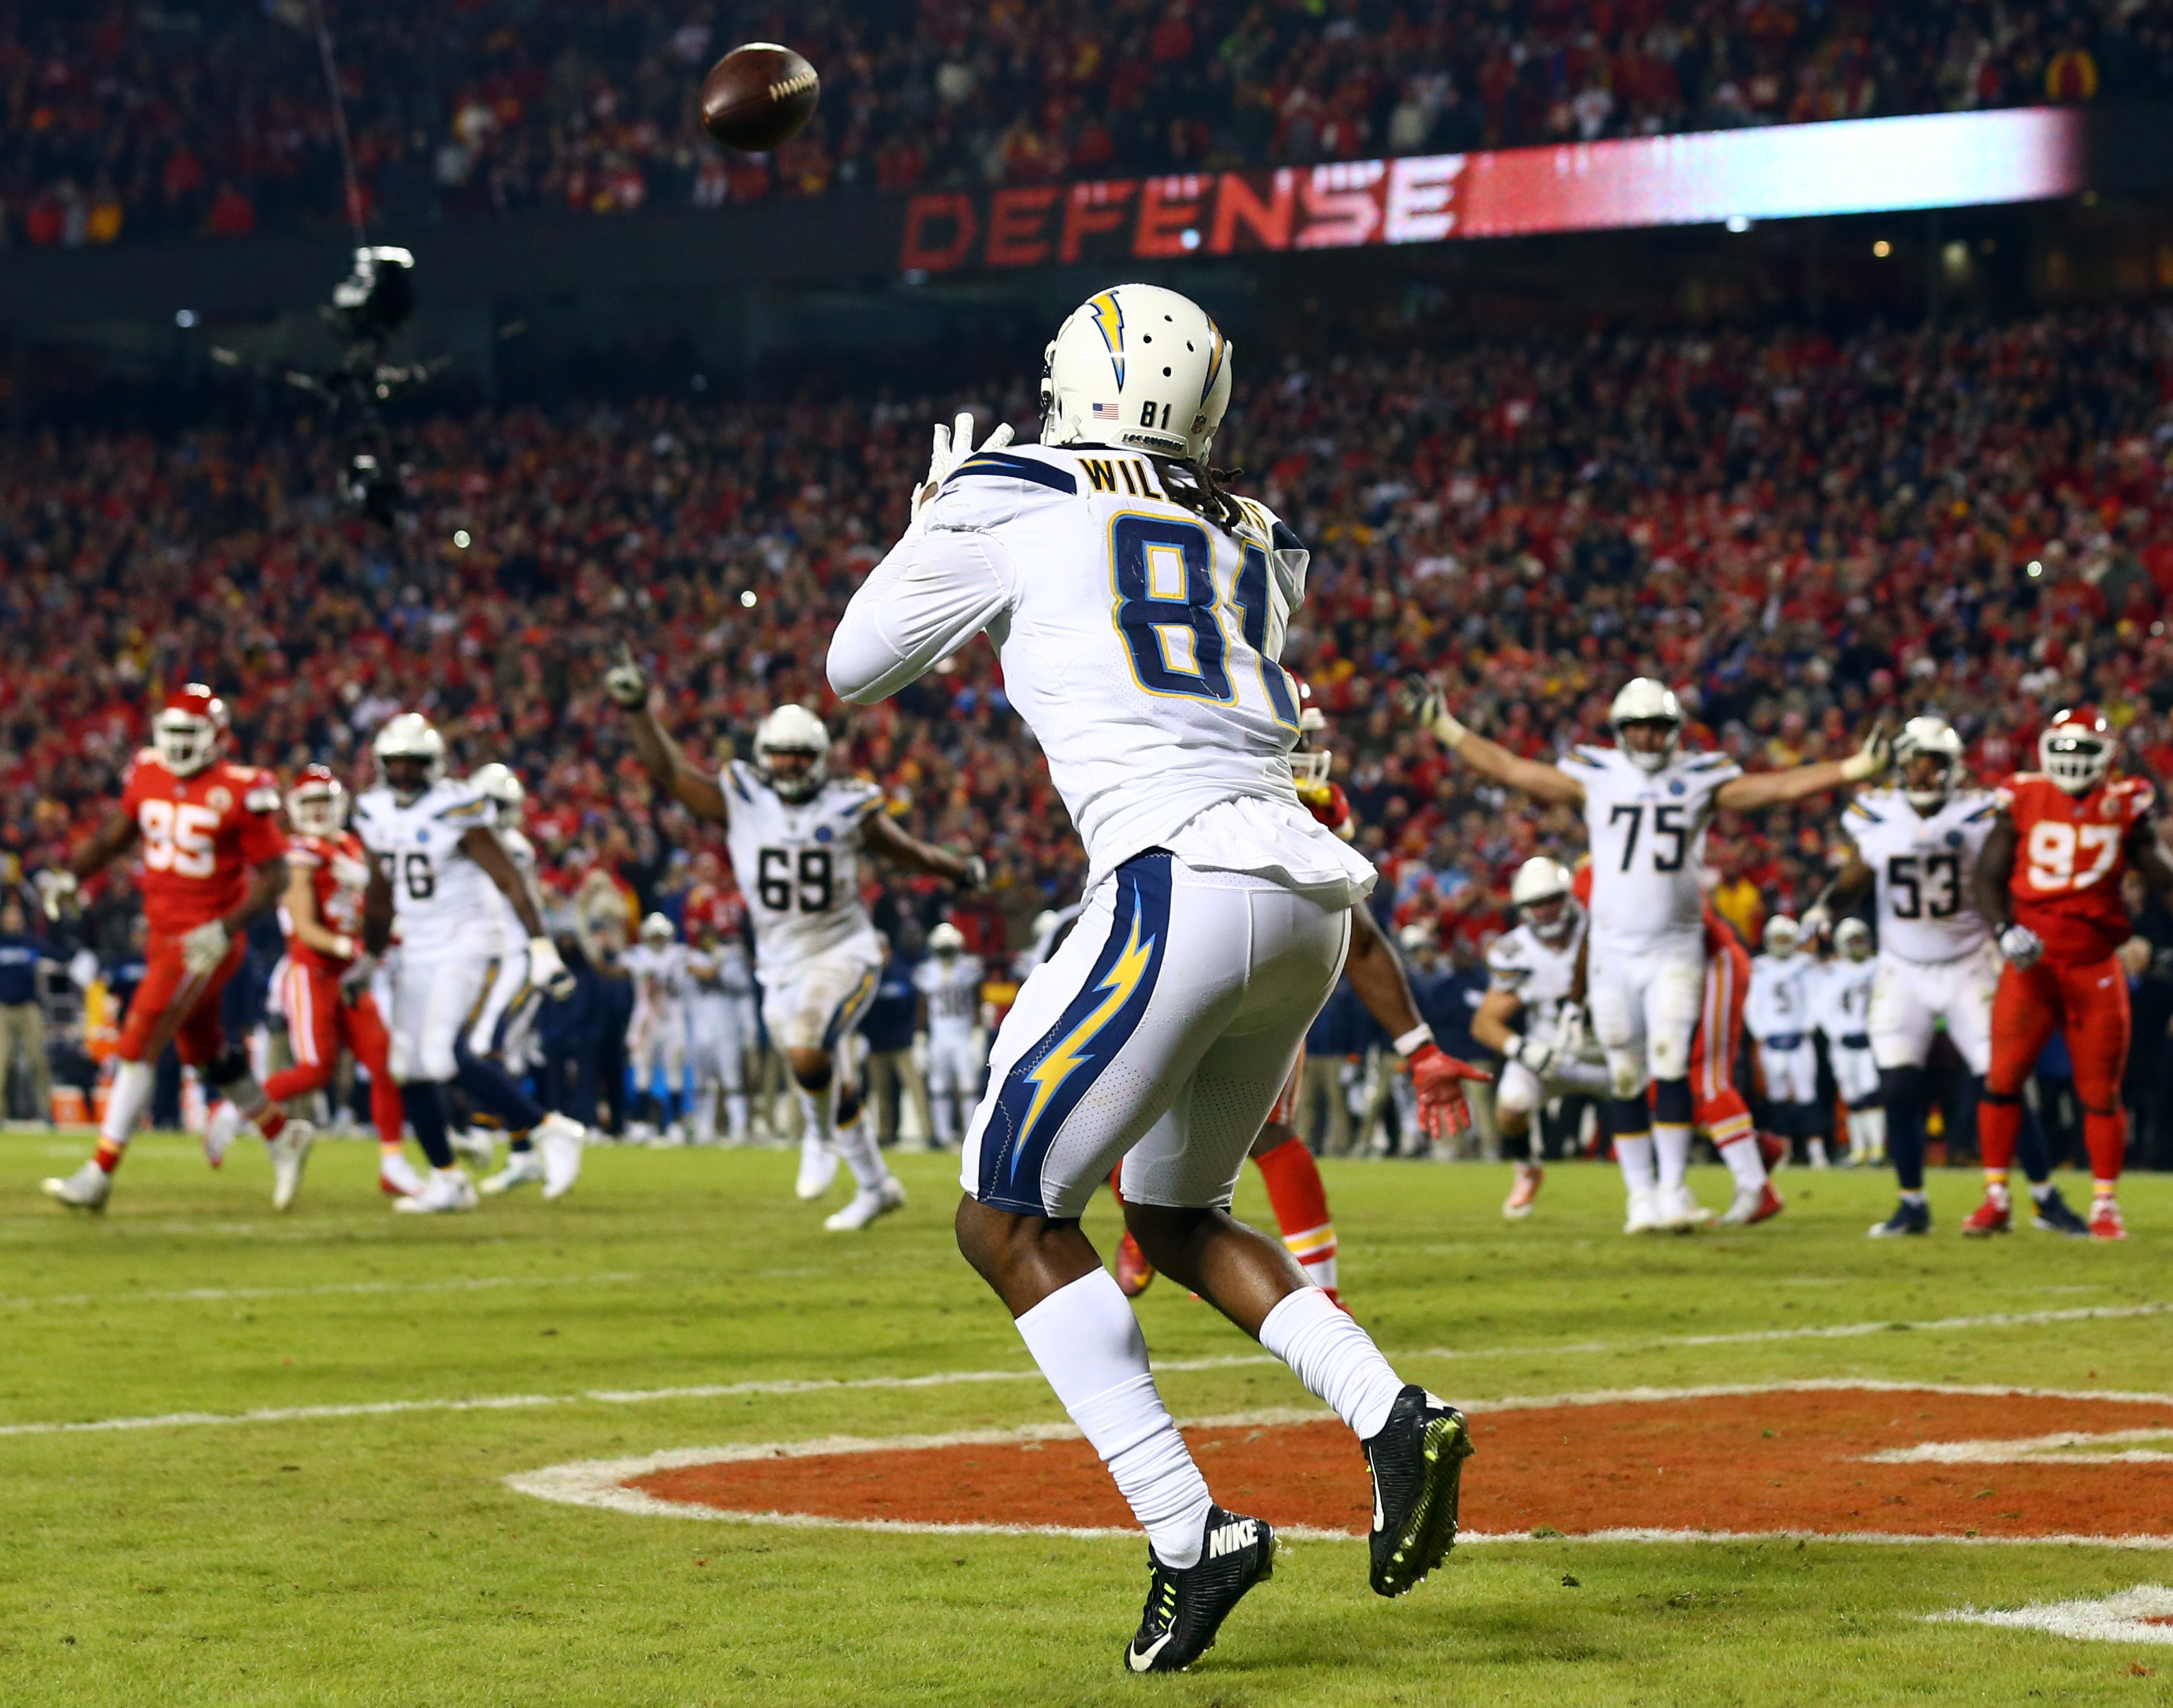 NFL: Los Angeles Chargers at Kansas City Chiefs